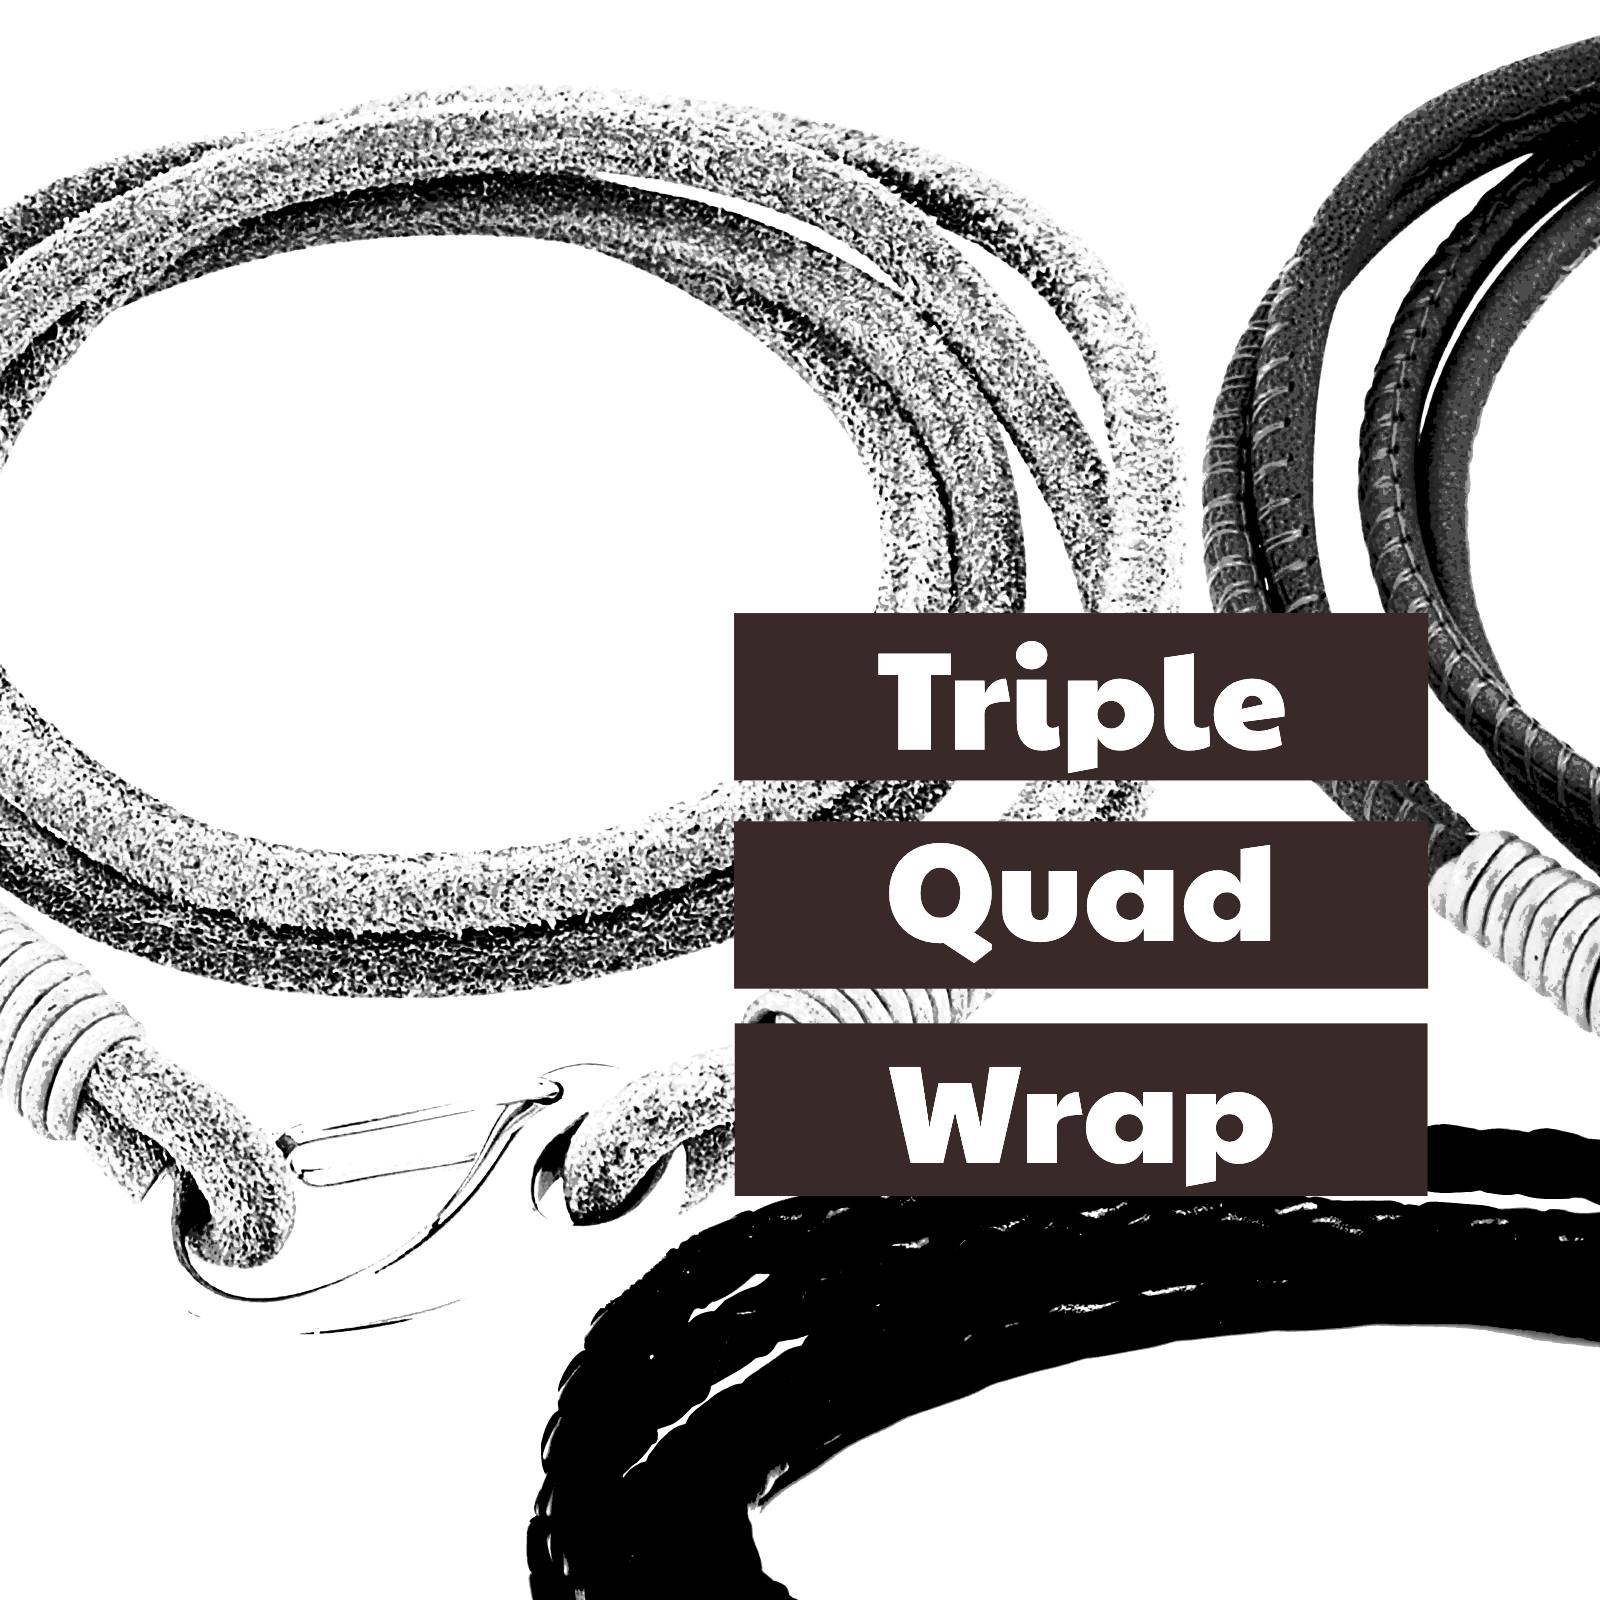 Triple and Quad Wrap Leather Bracelets